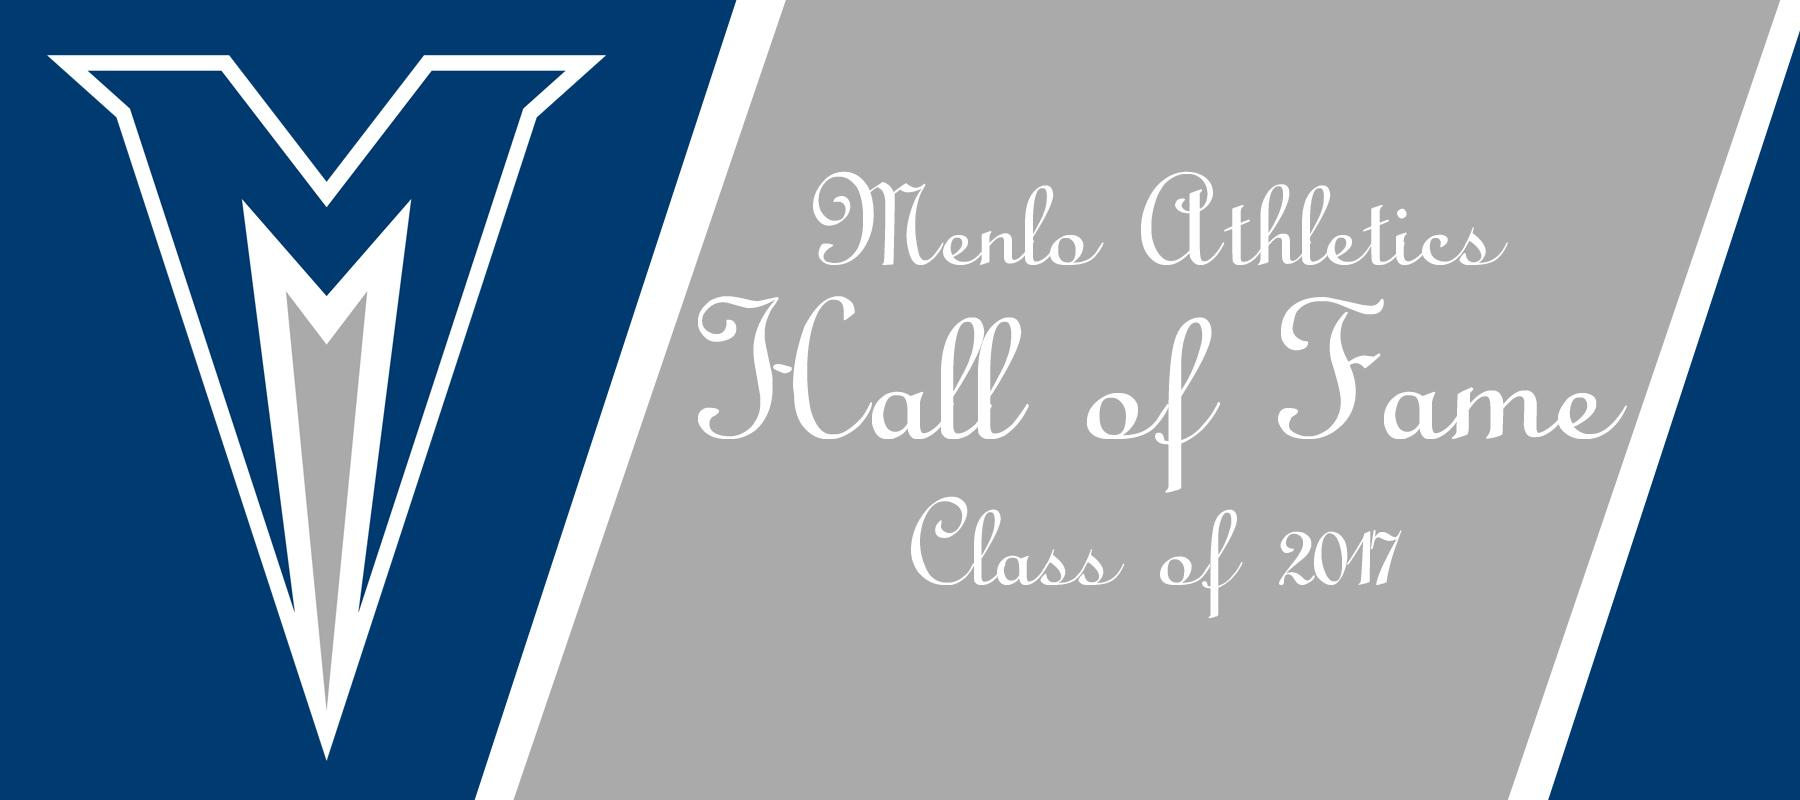 2017 Menlo Athletics Hall of Fame Class Announced